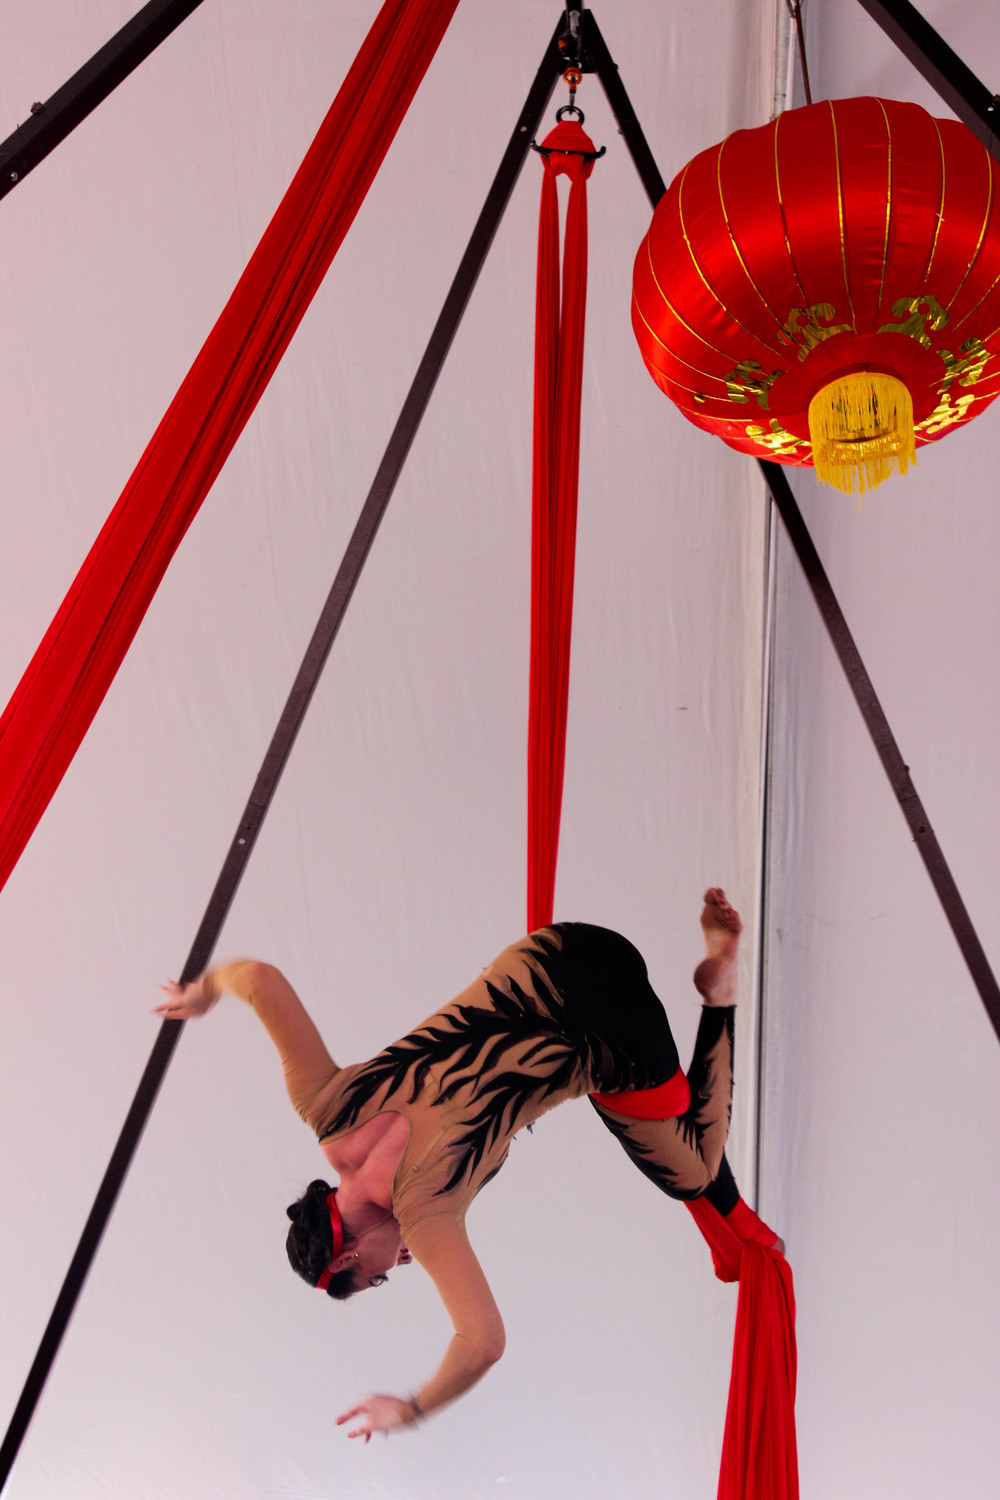 The Draiku Aerial Spectacle amazes the crowd of Austinites.